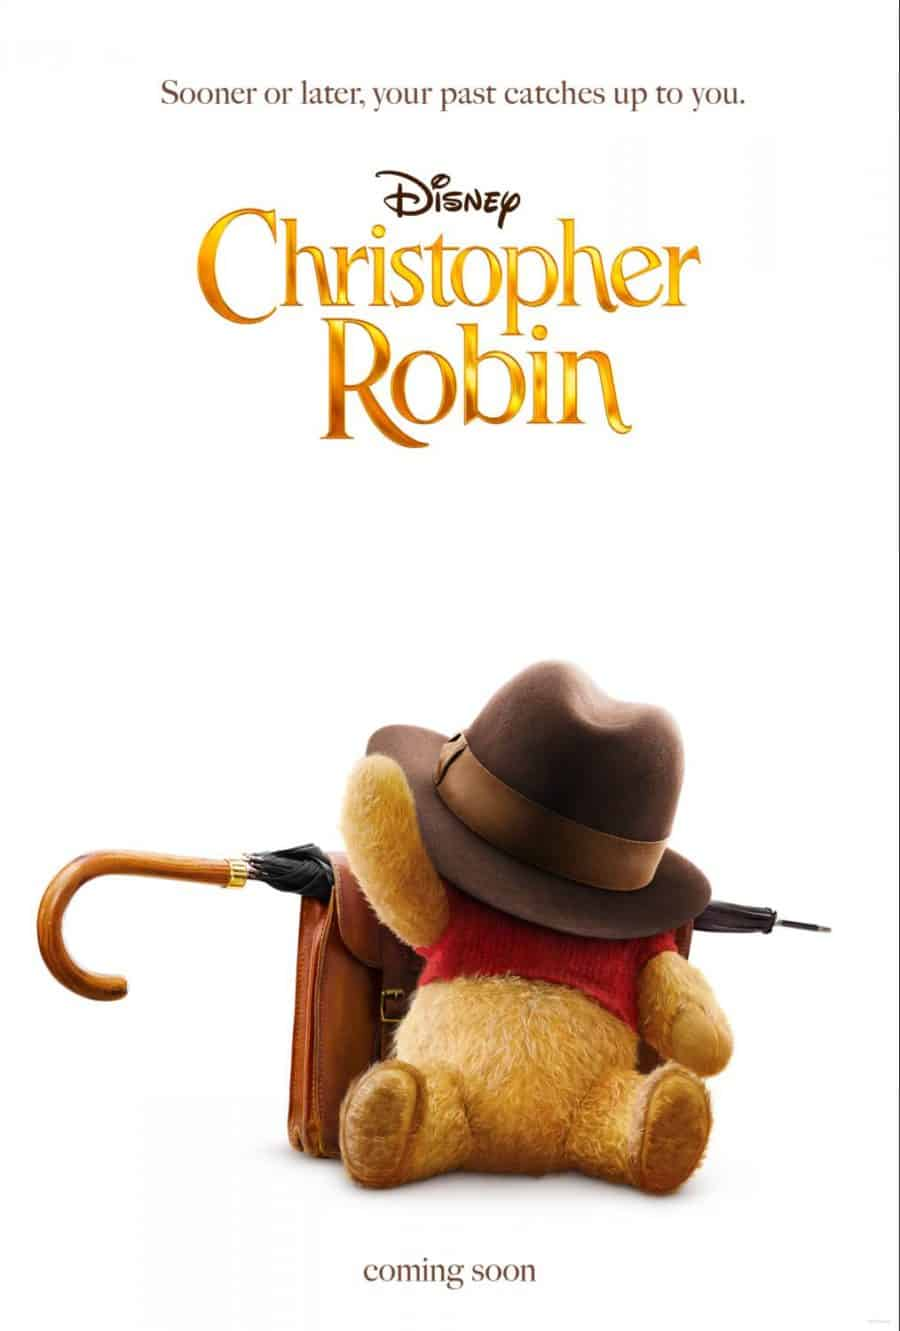 Christopher Robin first poster